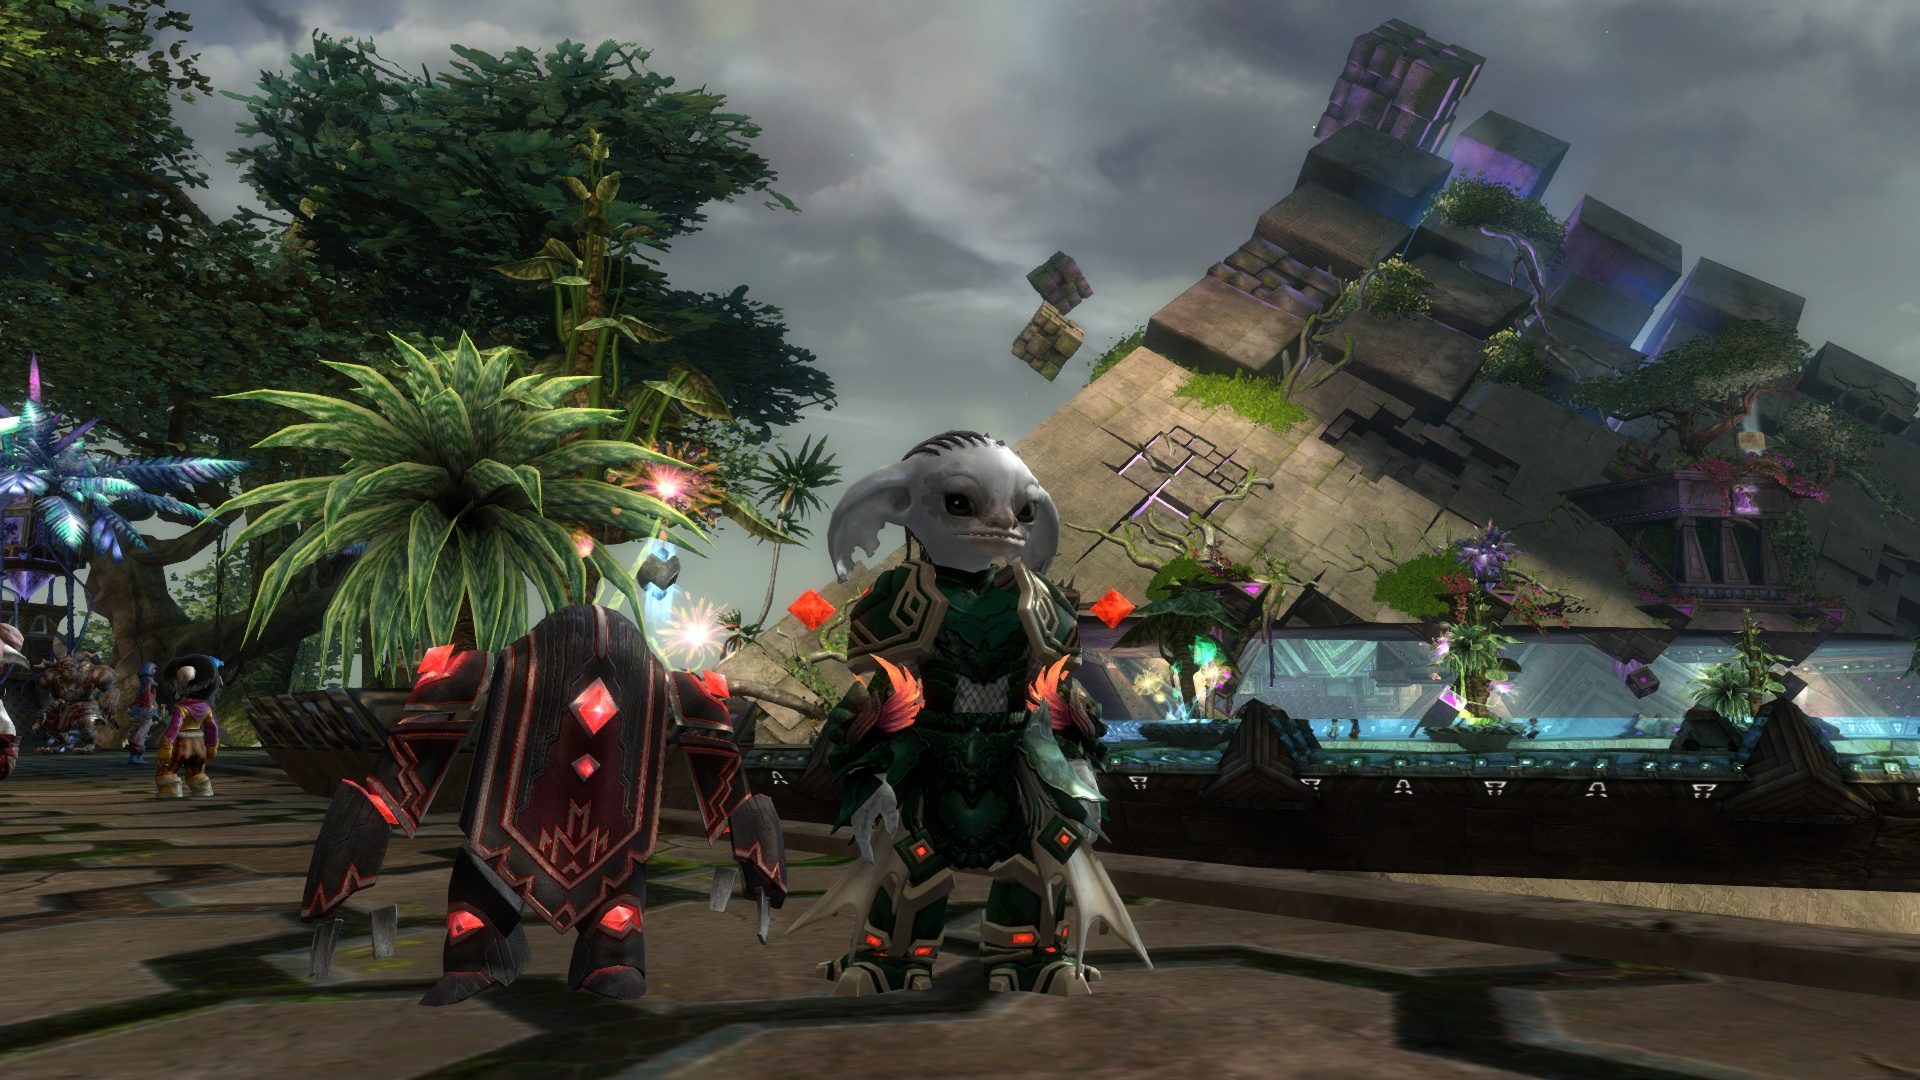 Guild wars 2 gw2 darkened desires gw2 fashion - You Can And It Even Sorta Kinda Matches The Red Golem Mini From The Hom